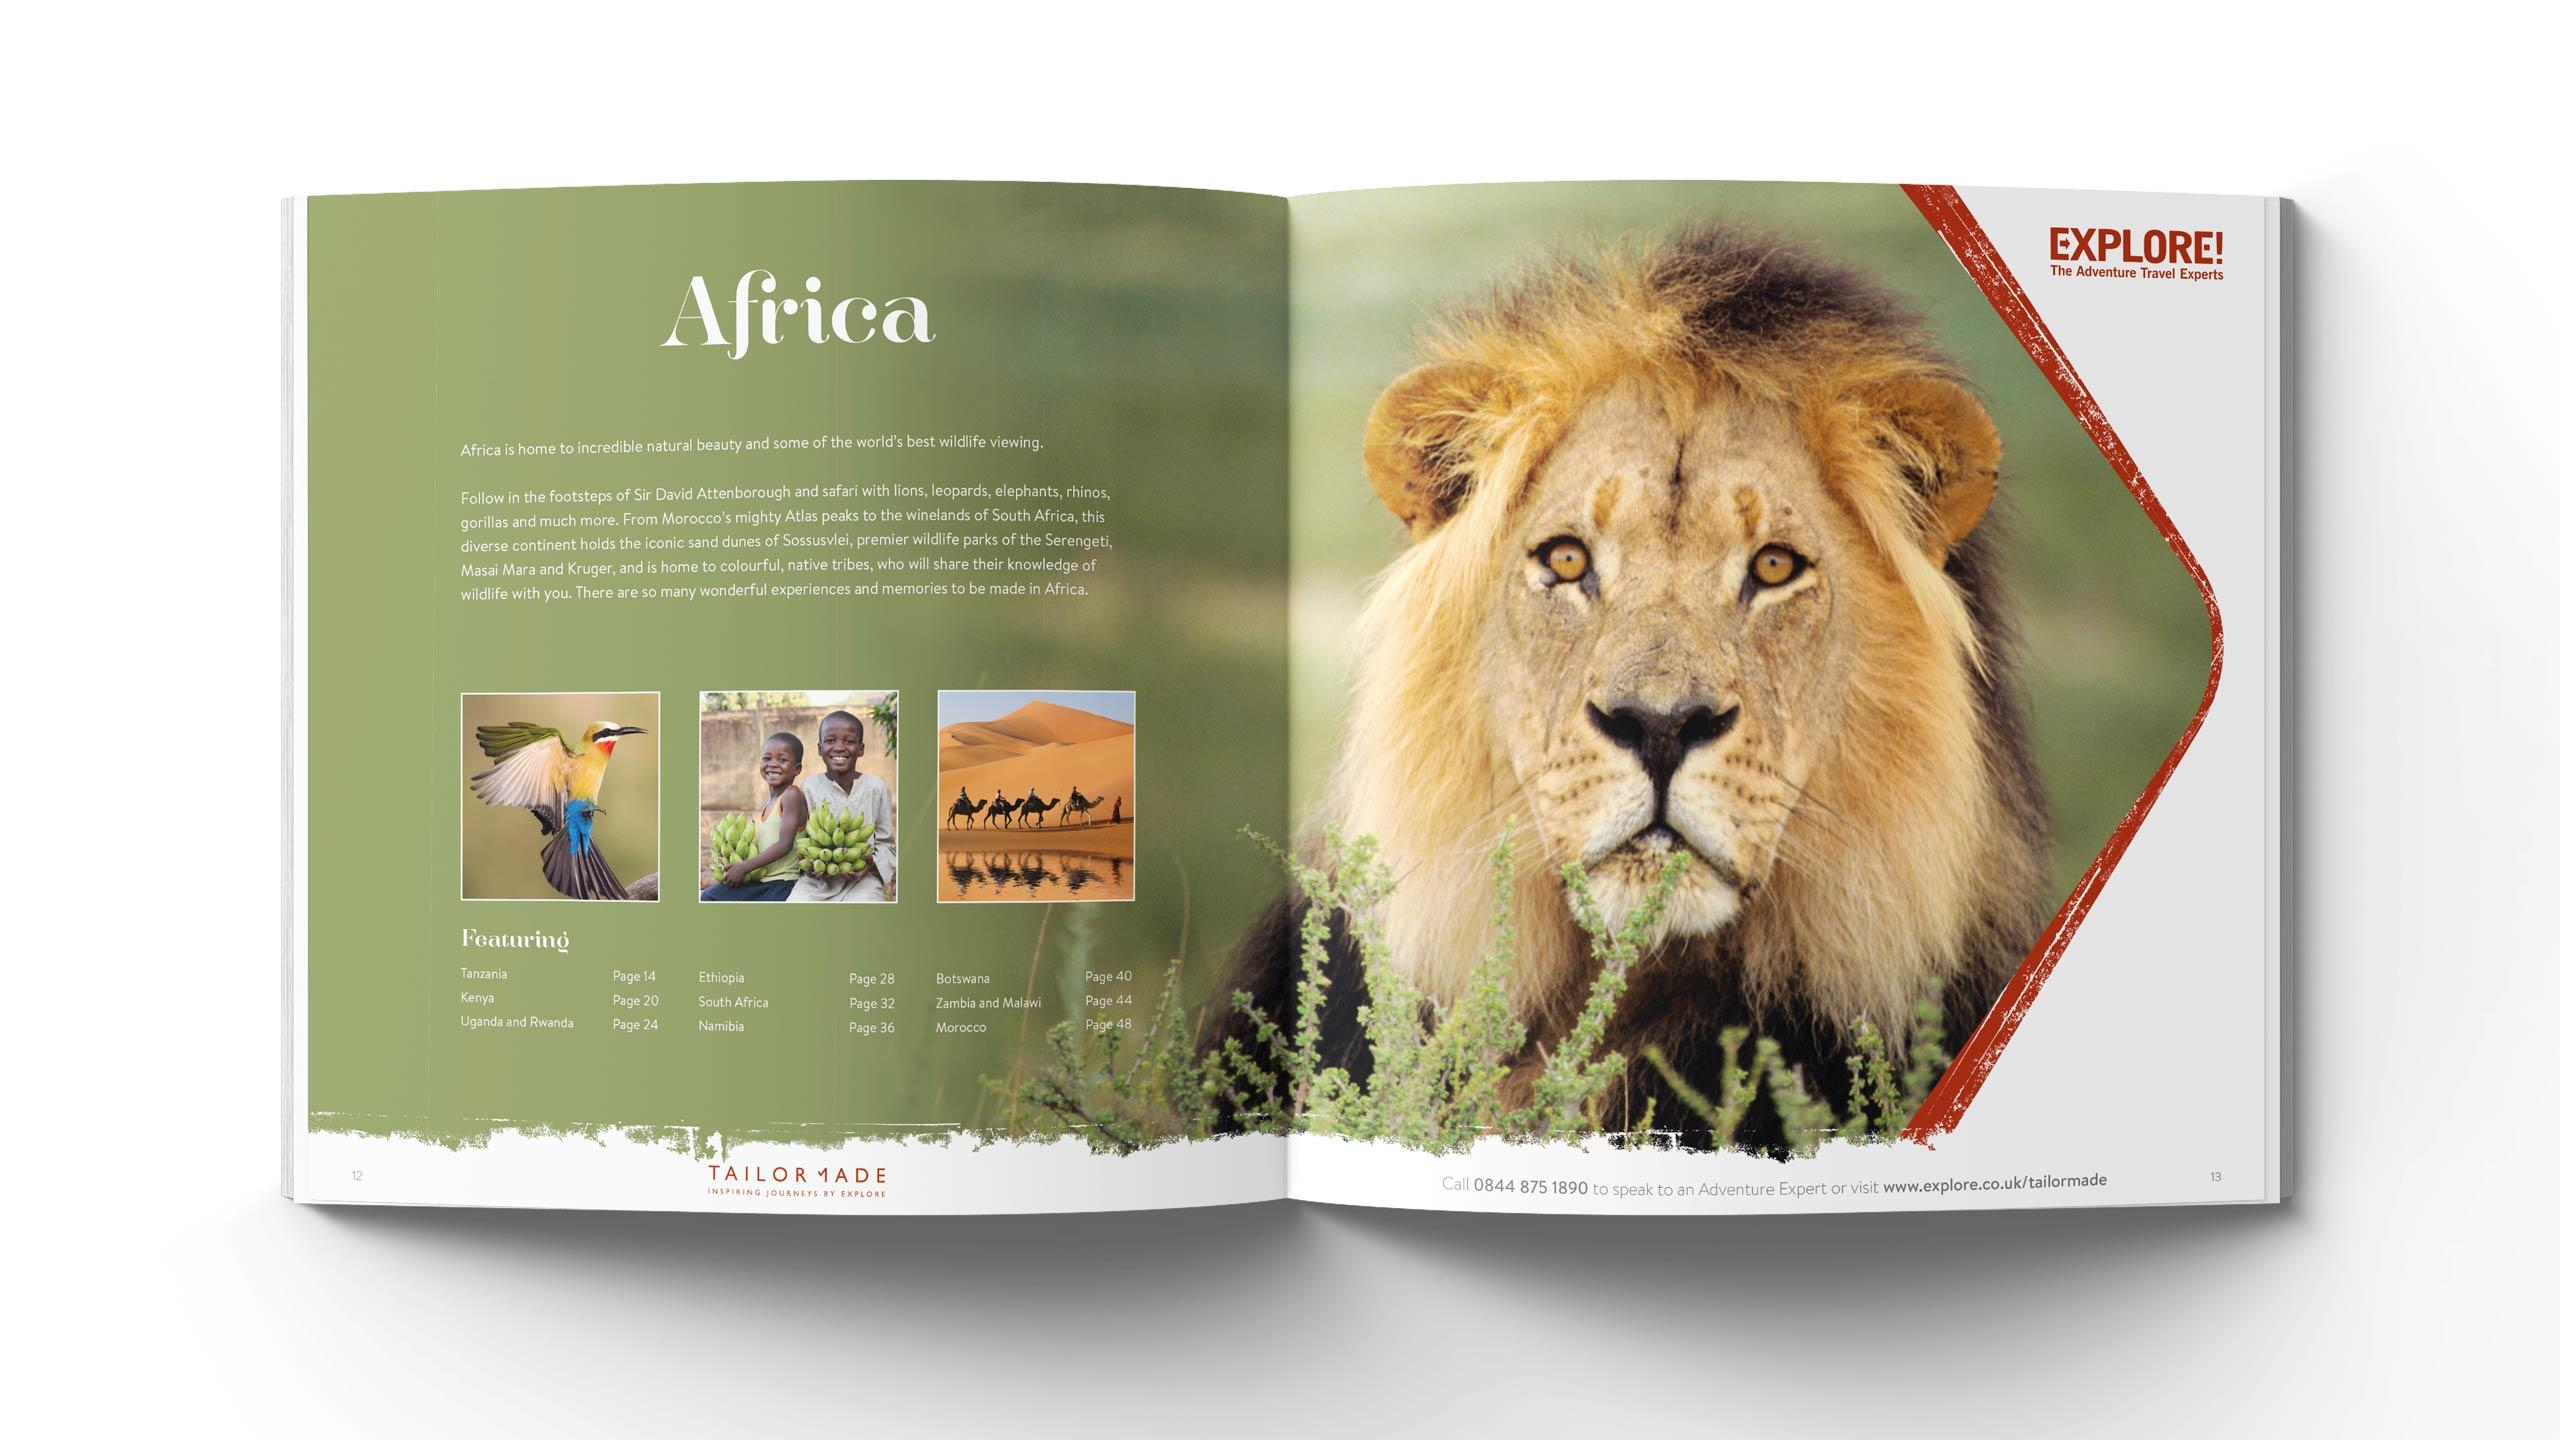 bespoke travel brochure design africa pages explore tailor-made